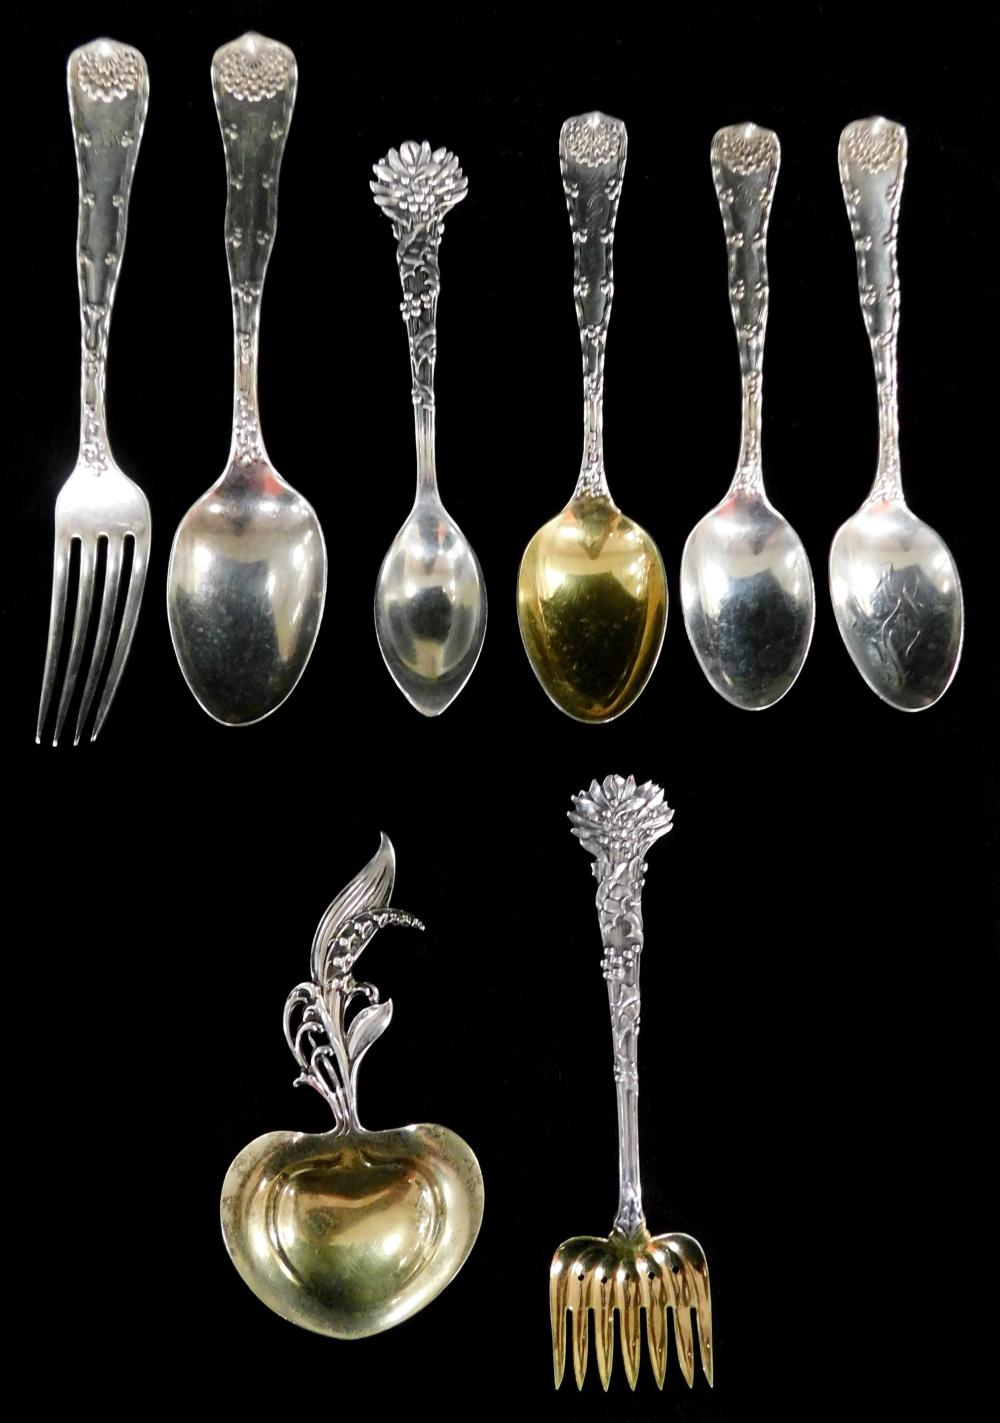 STERLING: Tiffany & Co., eight pieces of flatware and servingware, patterns include Holly, Wave Edge, etc., all pieces marked sterli...